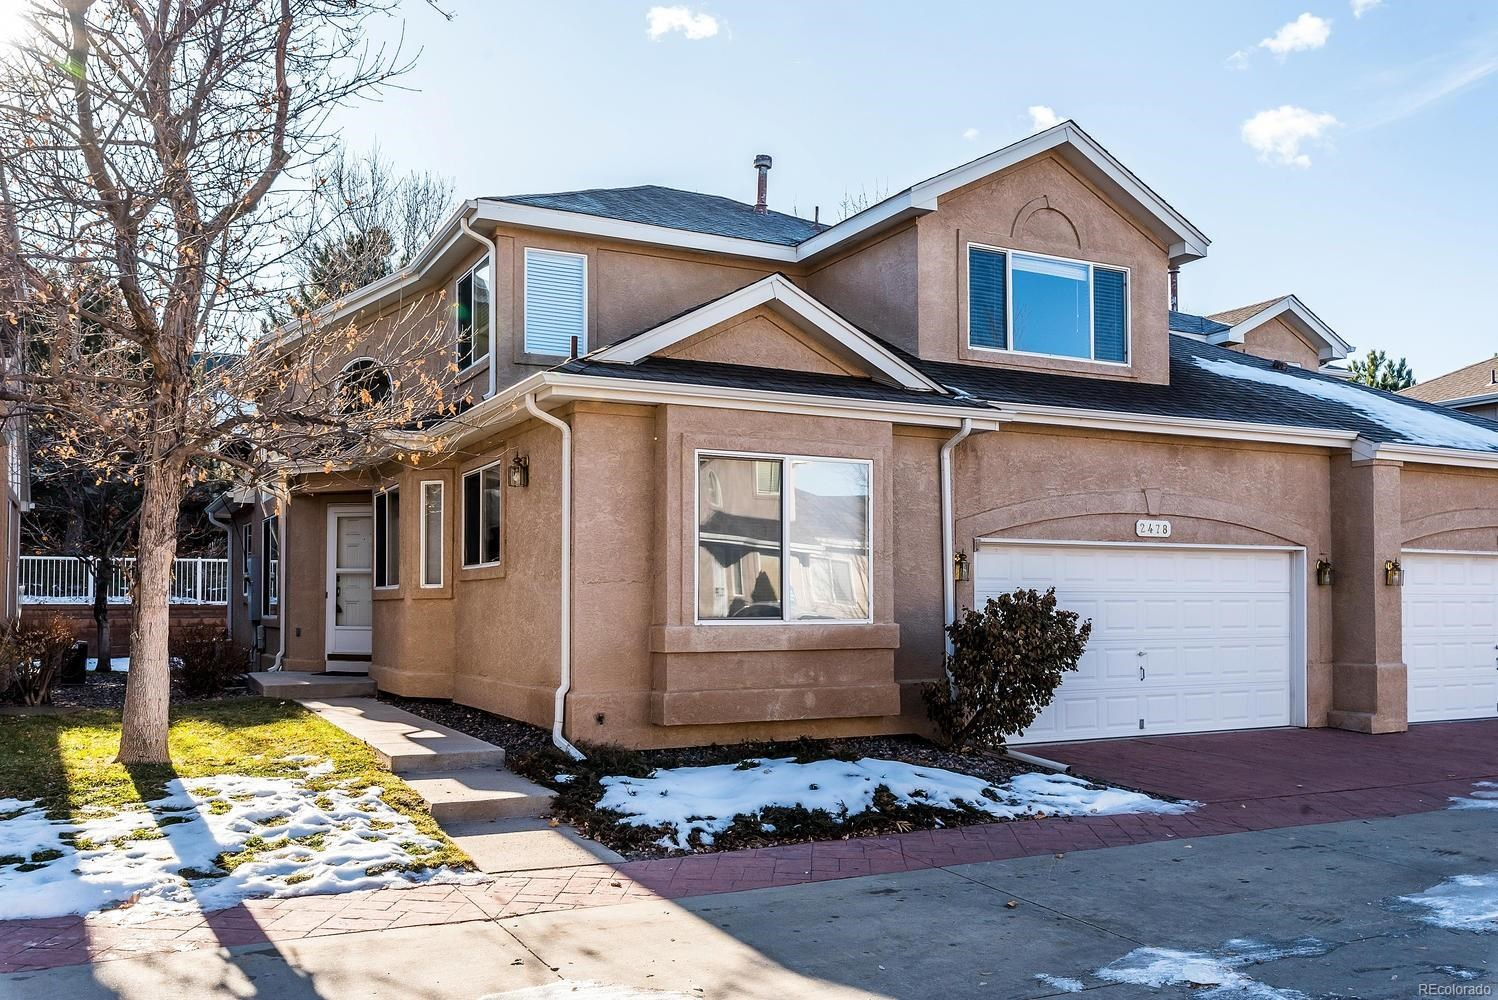 MLS# 6845218 - 1 - 2478 S Scranton Way, Aurora, CO 80014